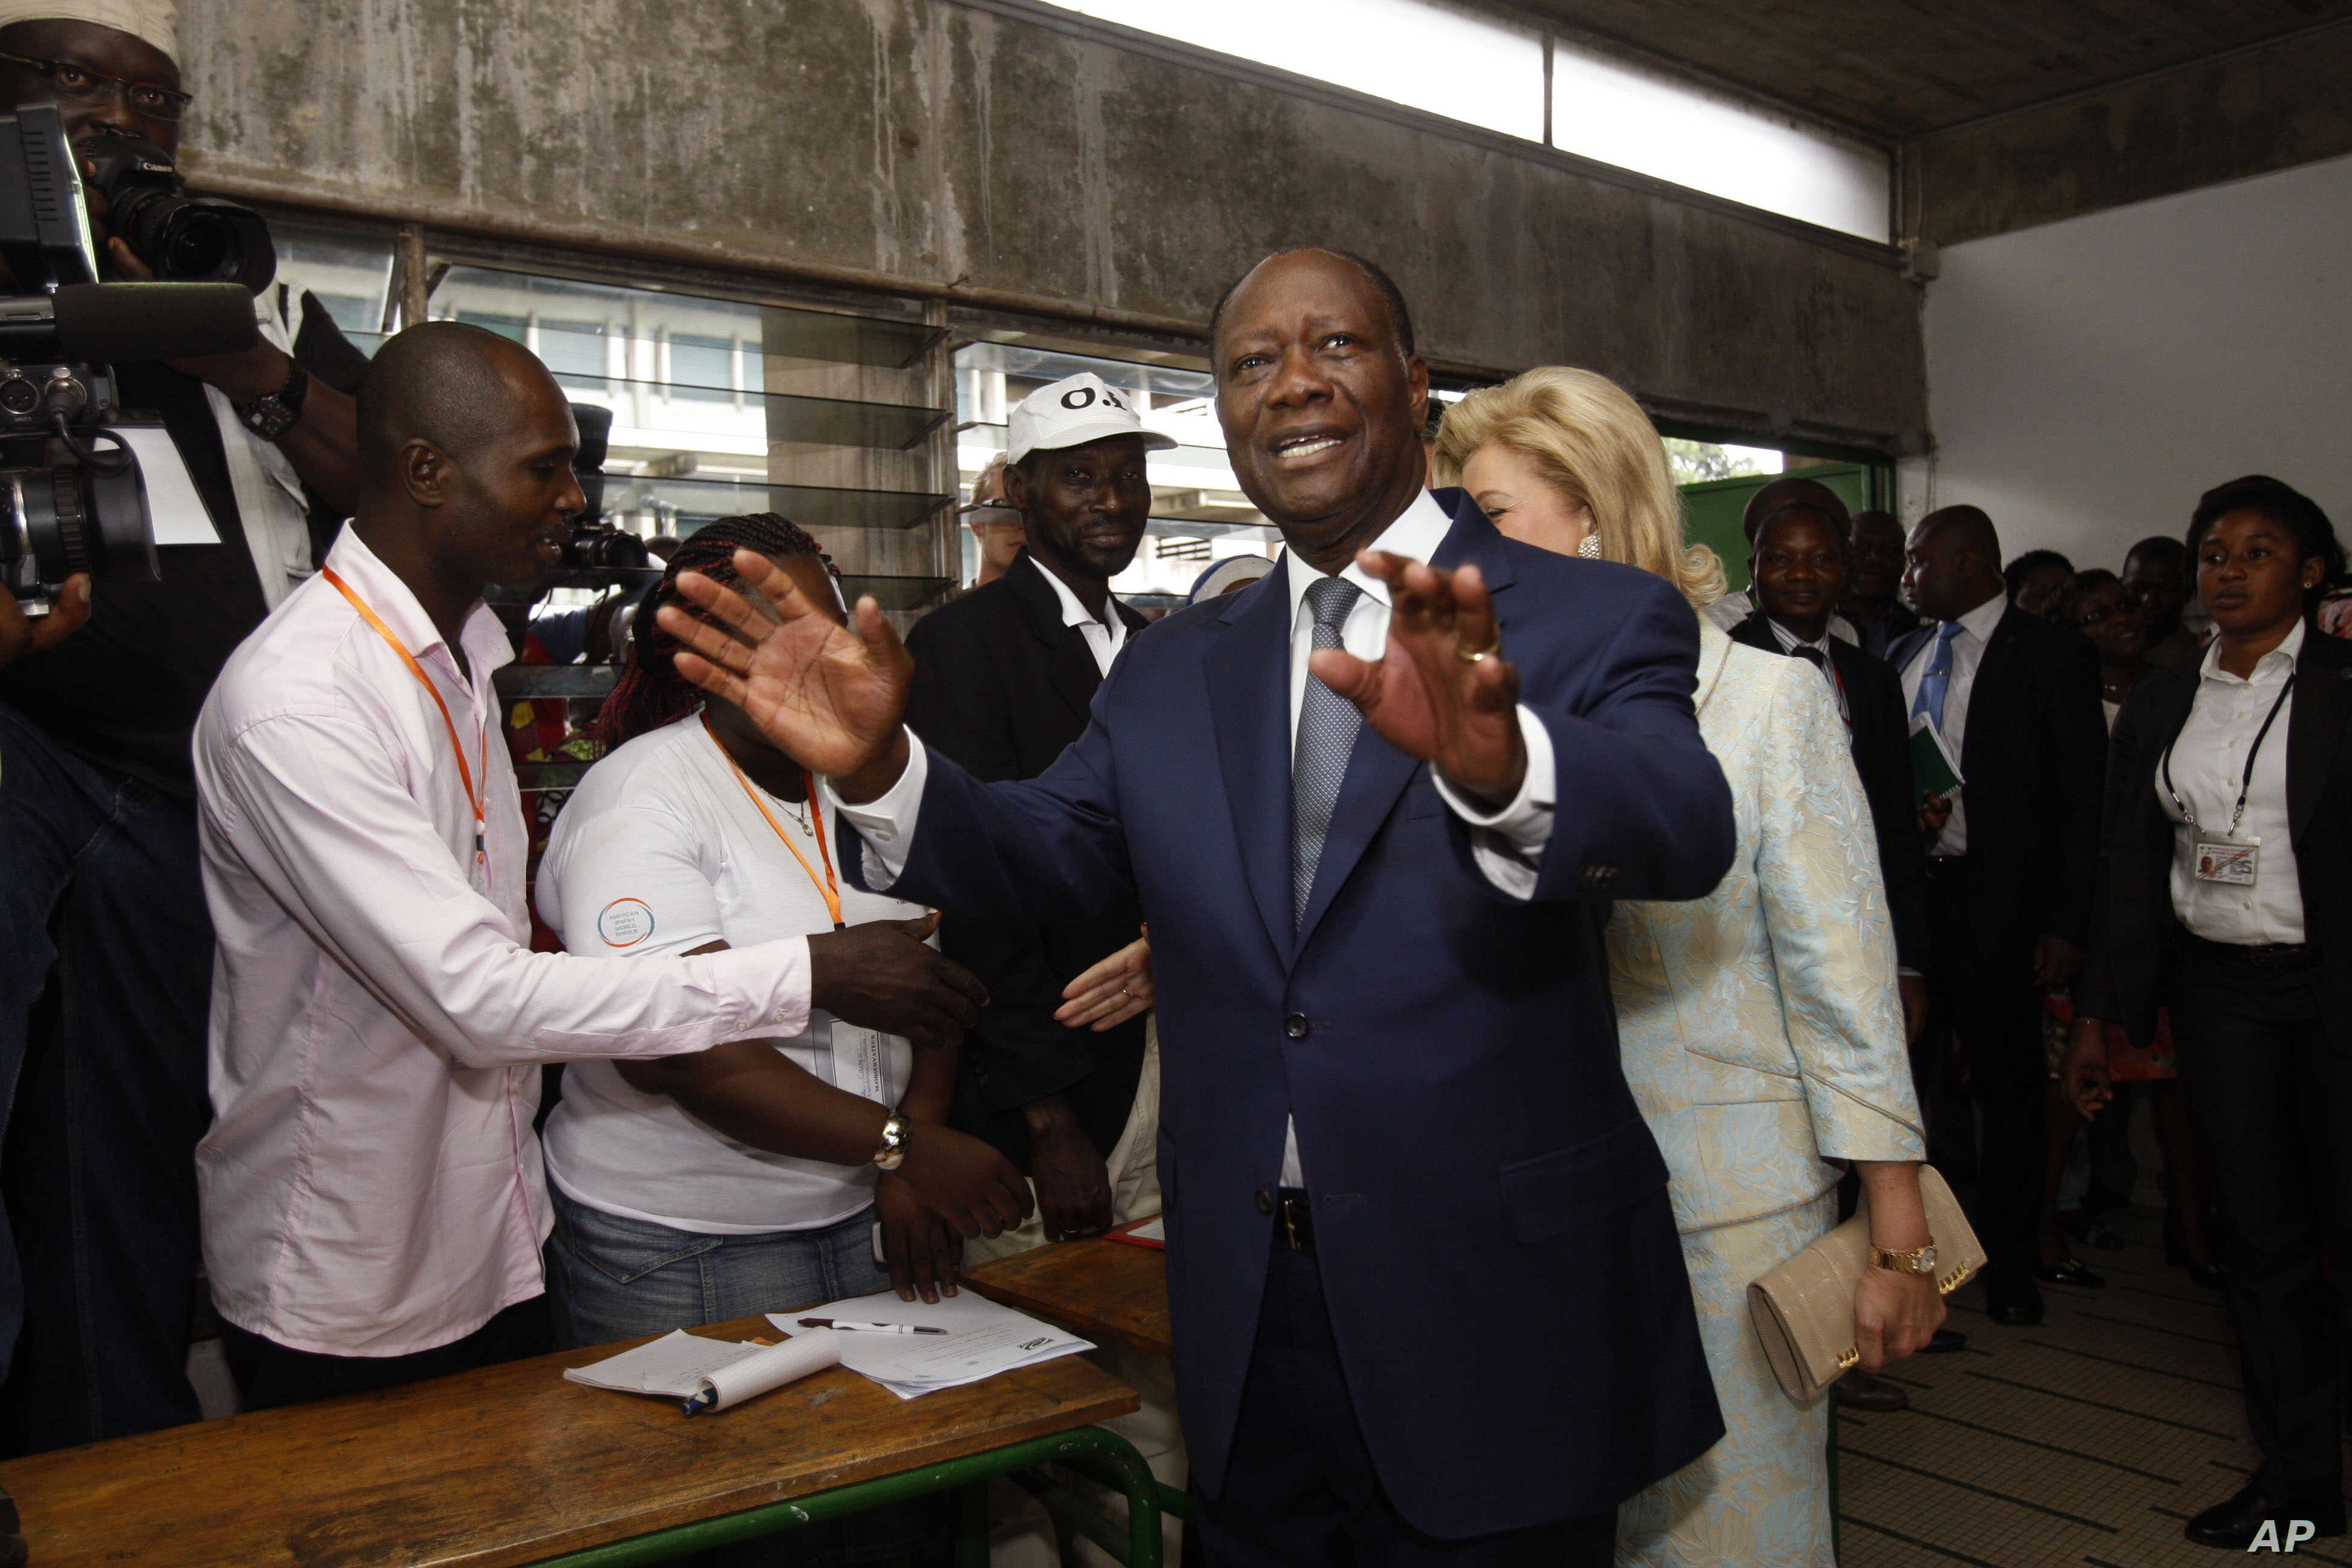 Ivory Coast's president Alassane Ouattara arrives inside a polling station to cast his ballot during elections in Abidjan, Ivory Coast, Oct. 25, 2015.